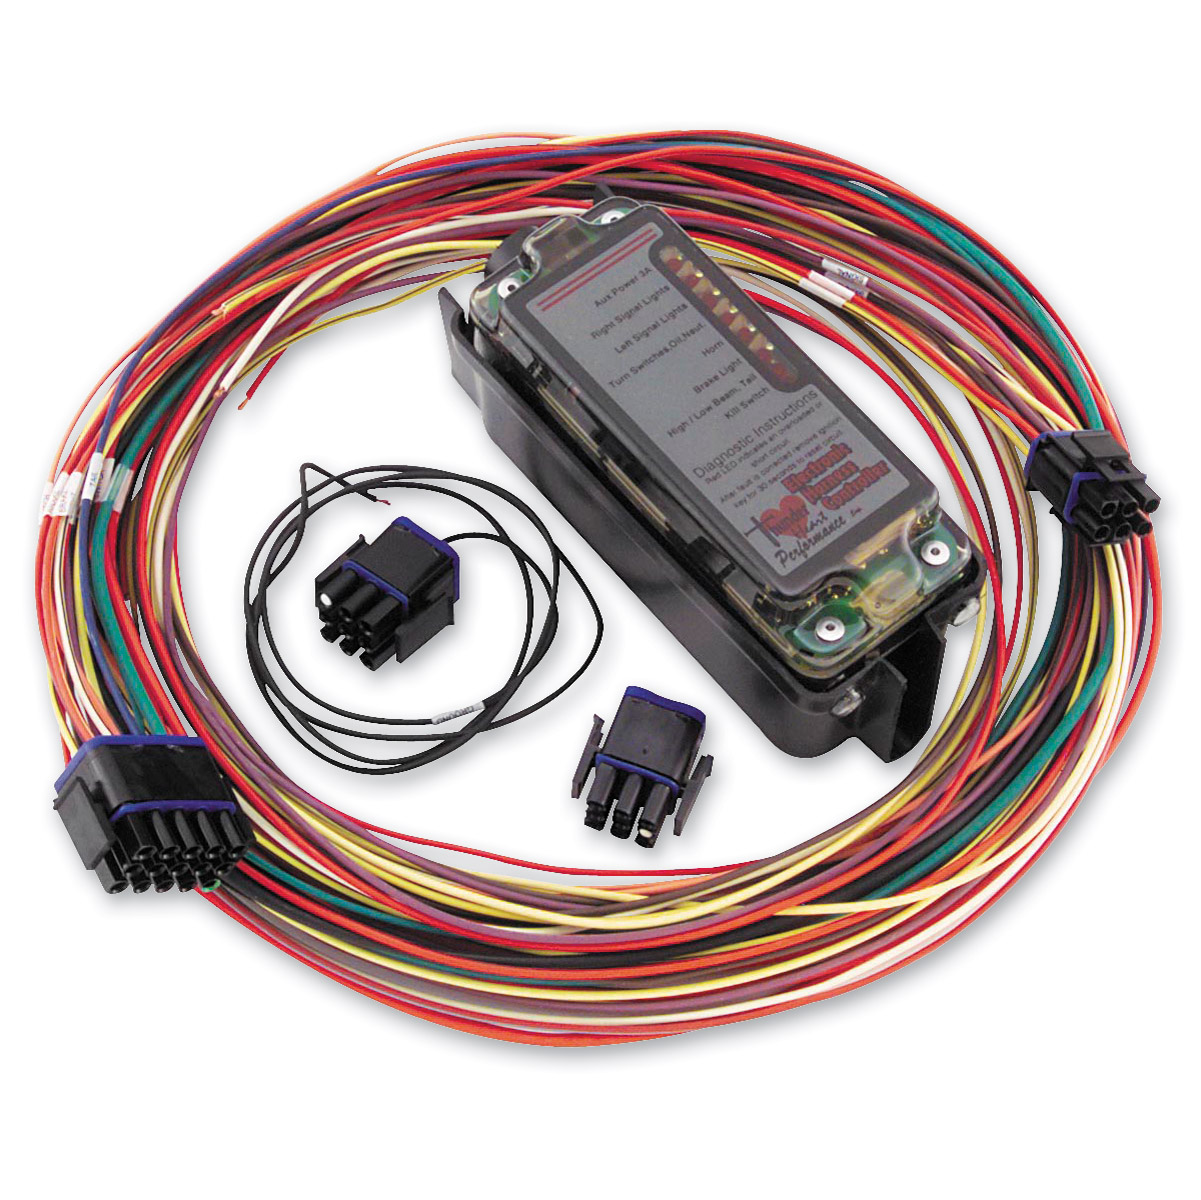 hight resolution of thunder heart performance complete electronic harness controller rh jpcycles com painless performance wiring harness painless performance